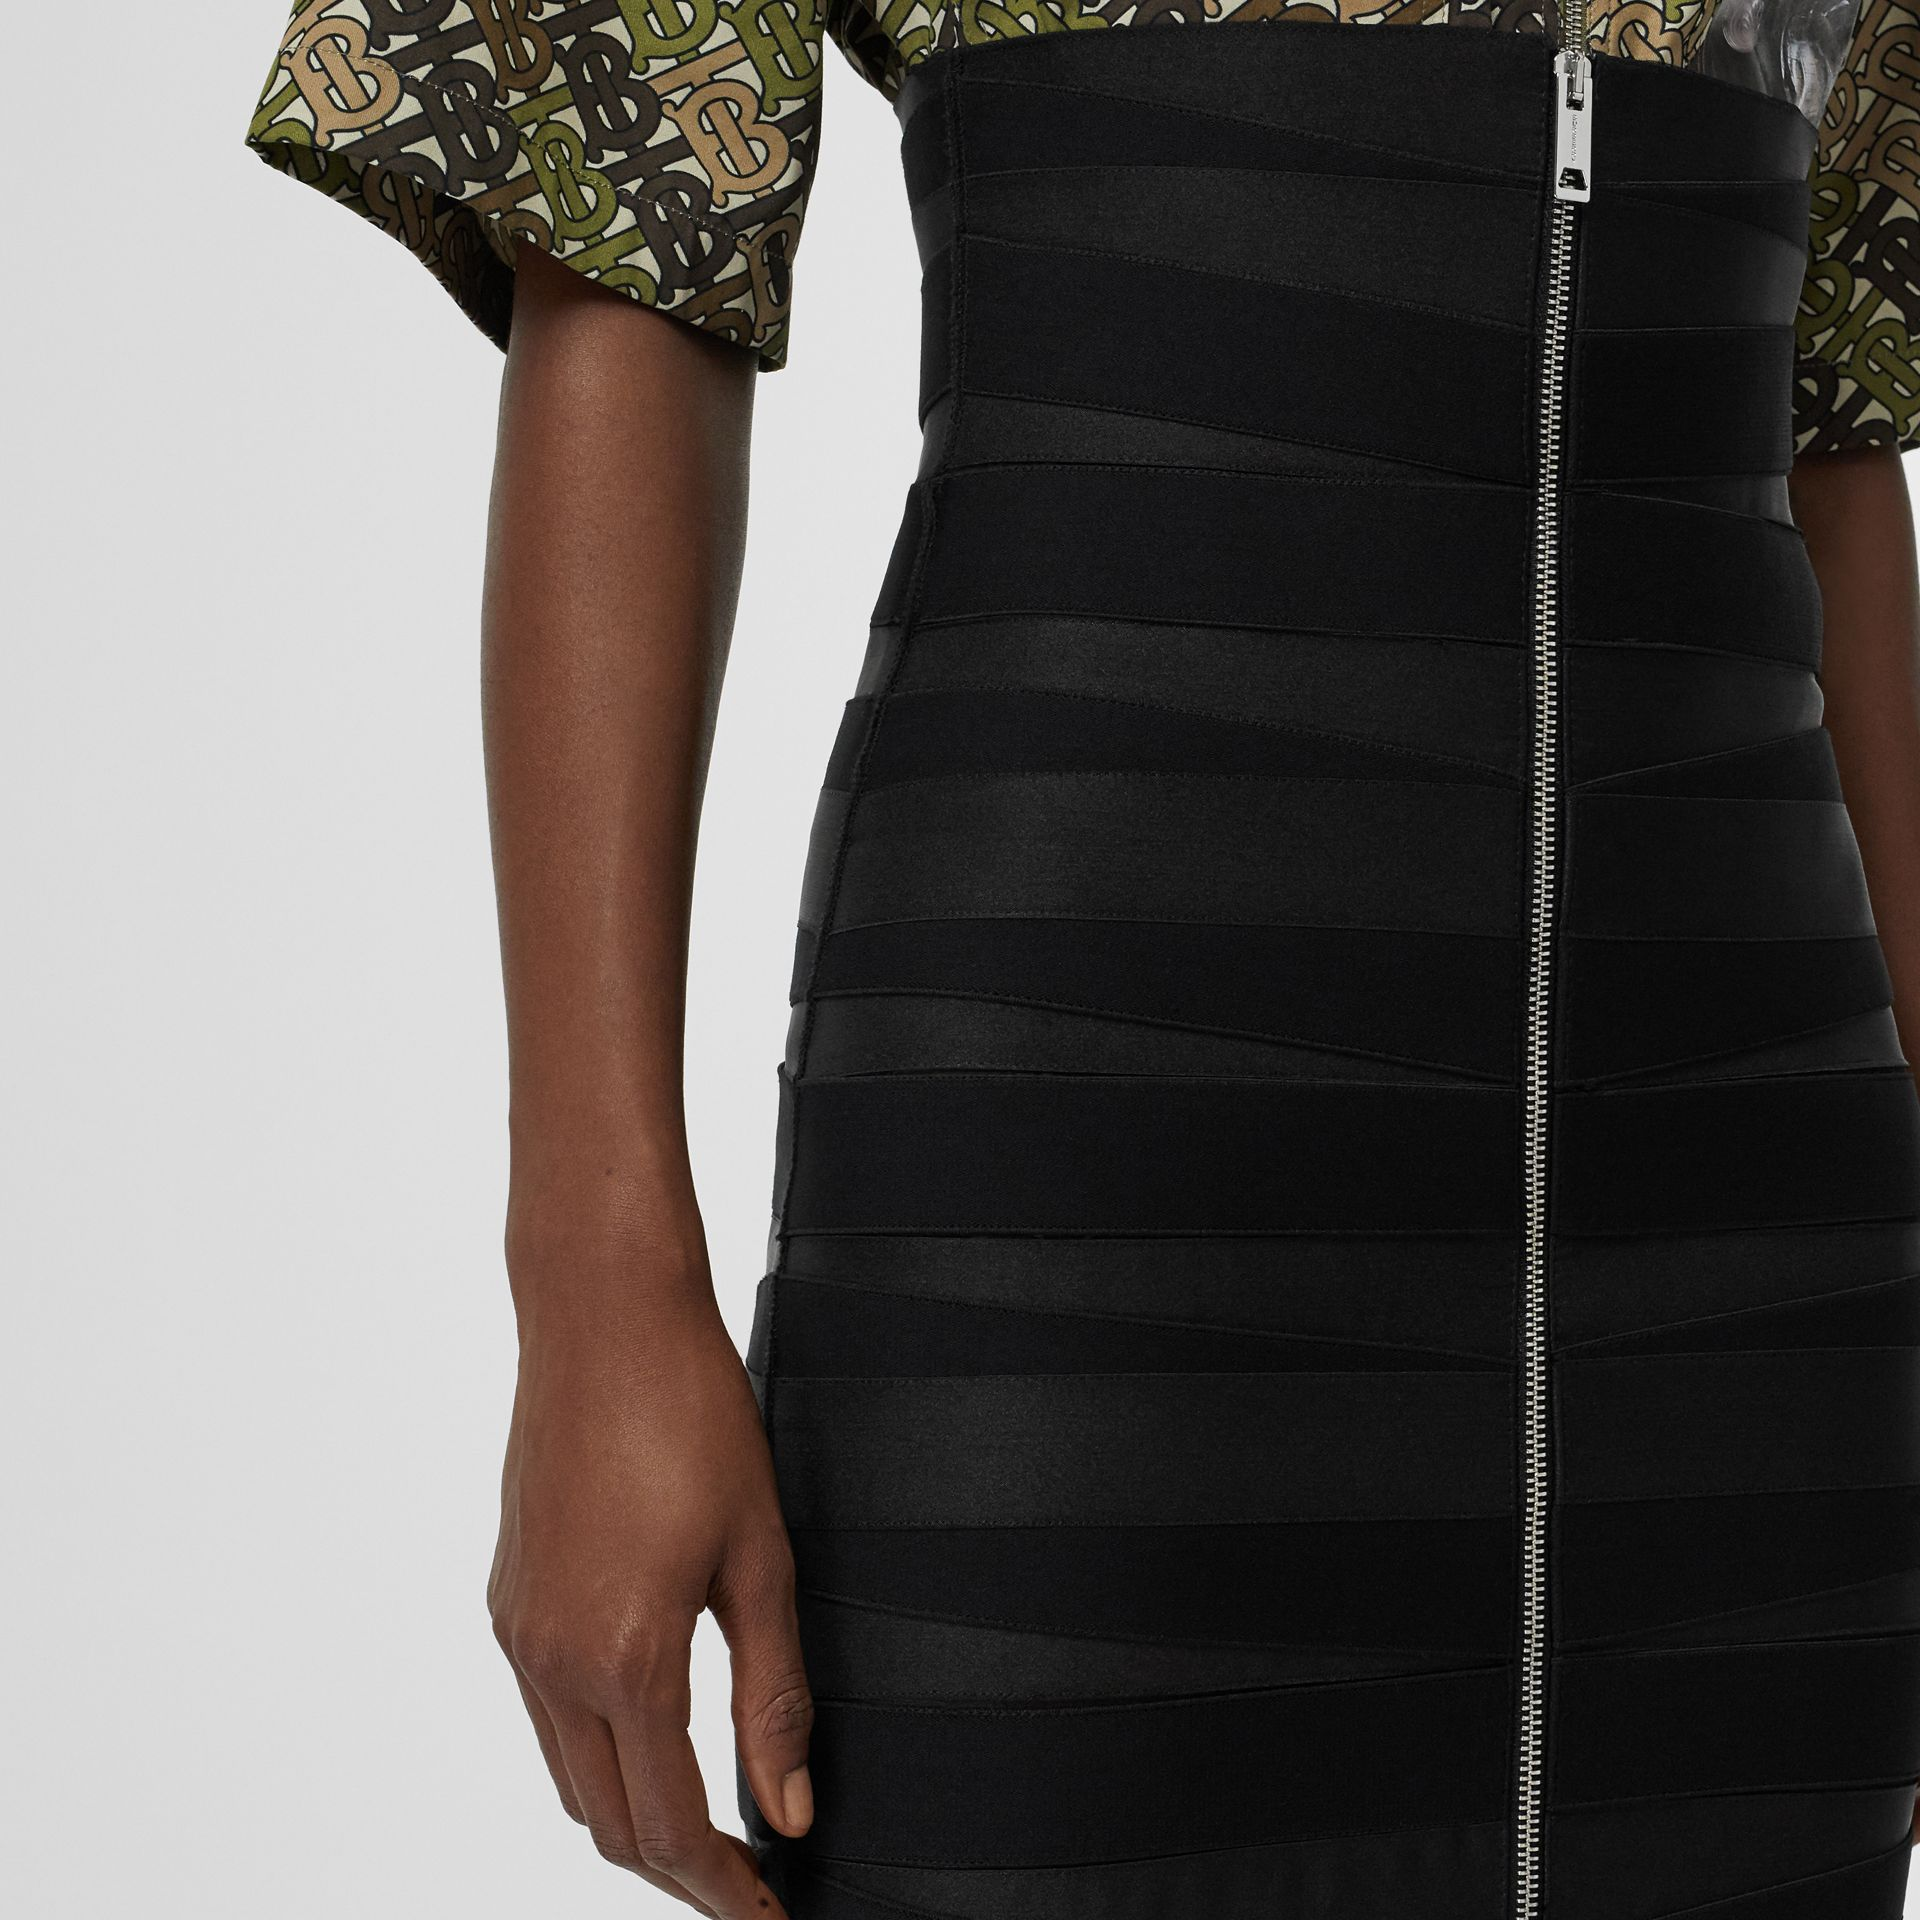 Stretch Zip-front Bandage Skirt in Black - Women | Burberry United Kingdom - gallery image 1